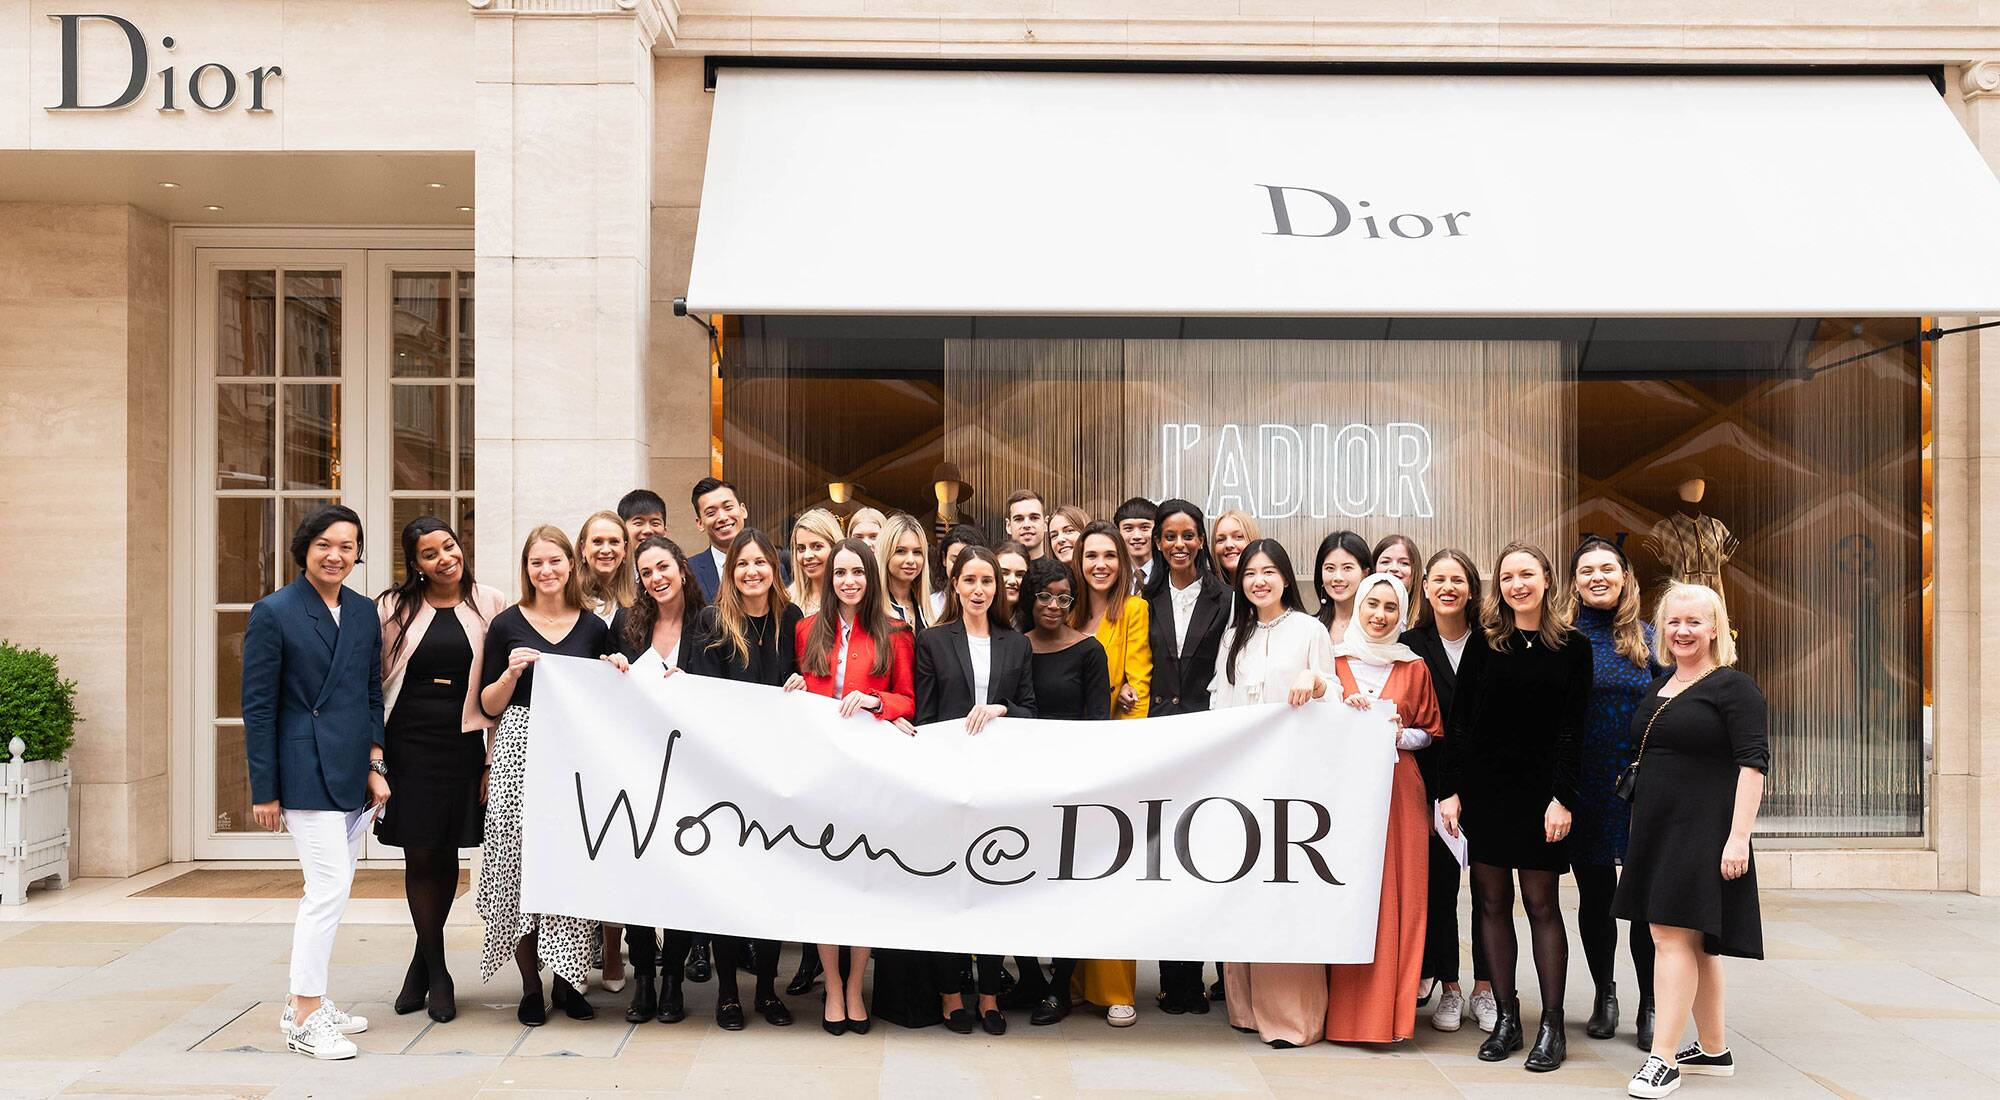 DIOR 'Women at Dior' to host event with Unesco